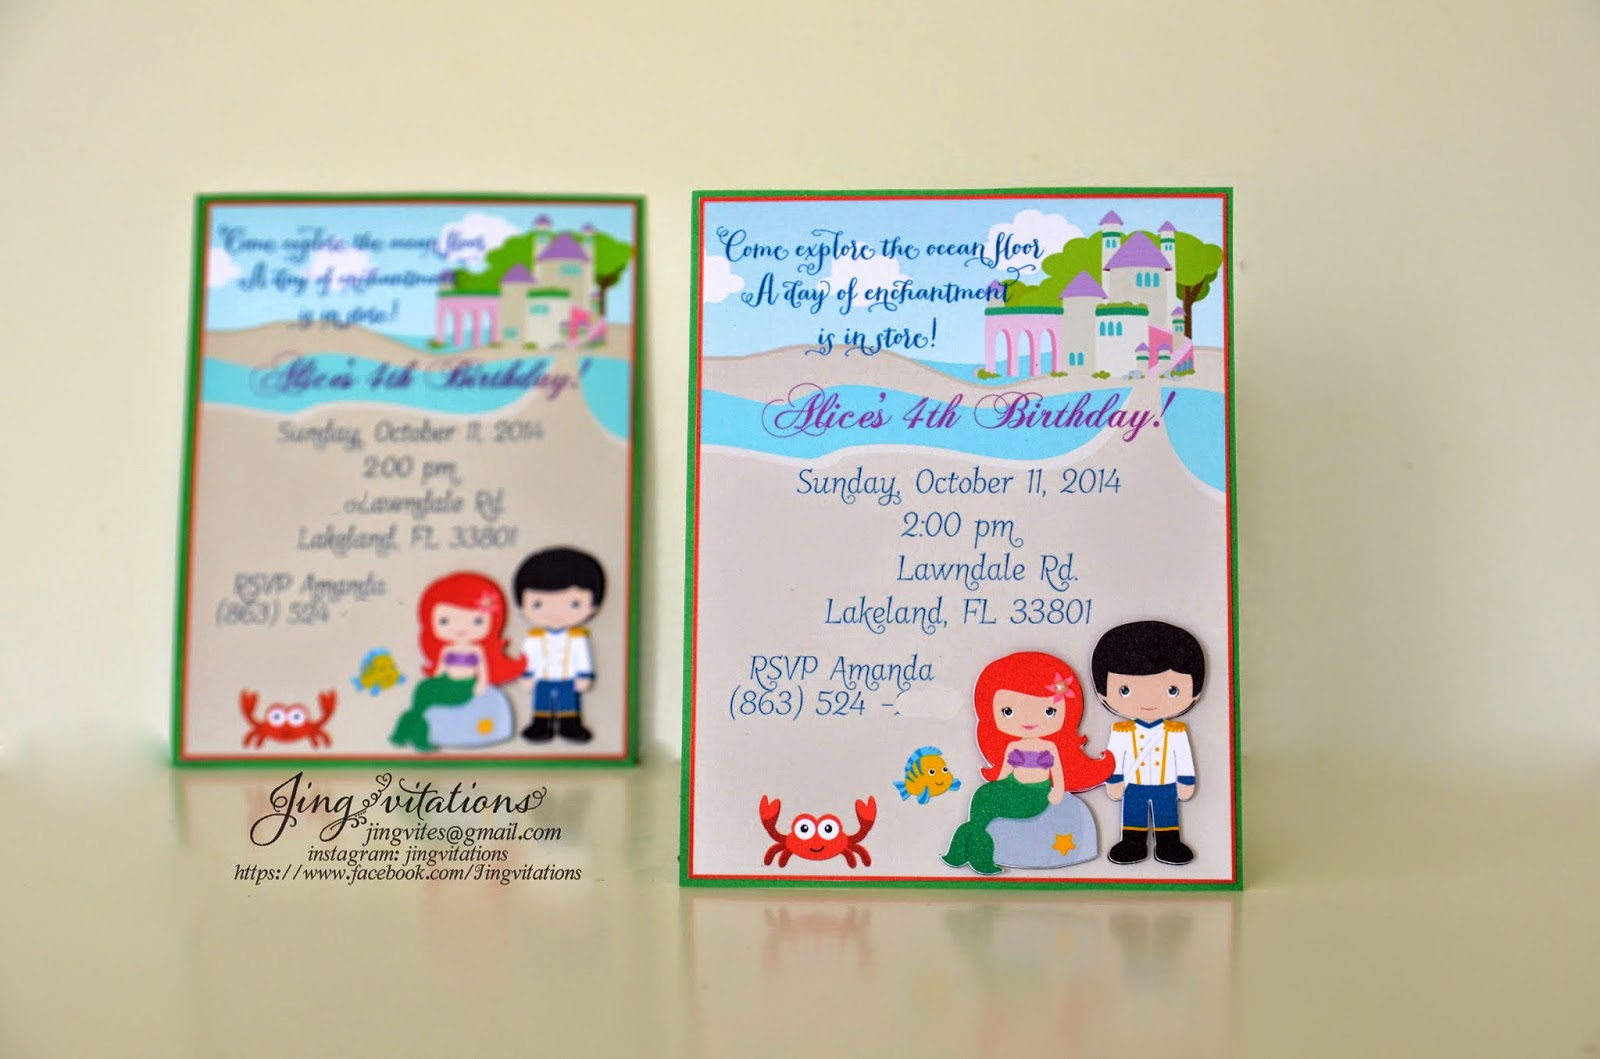 under_the_sea invitations